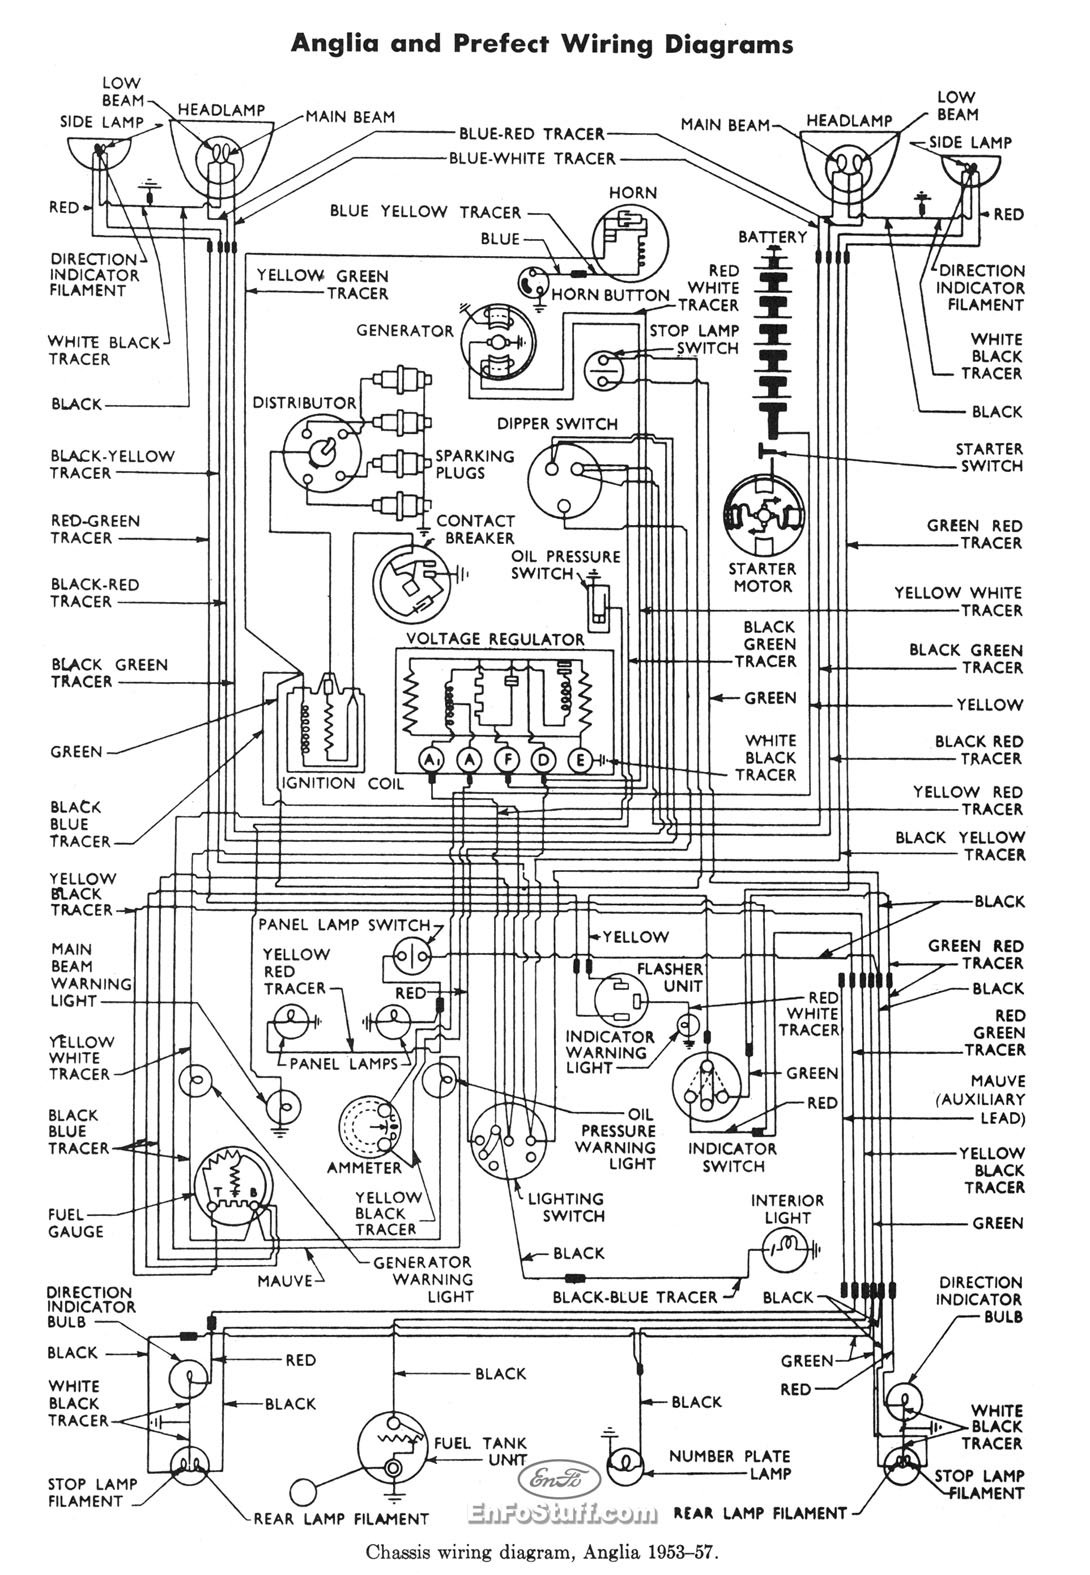 ford anglia 1953 57 wiring diagram wiring diagram for ford anglia 1953 57 ford 3000 wiring diagram at edmiracle.co